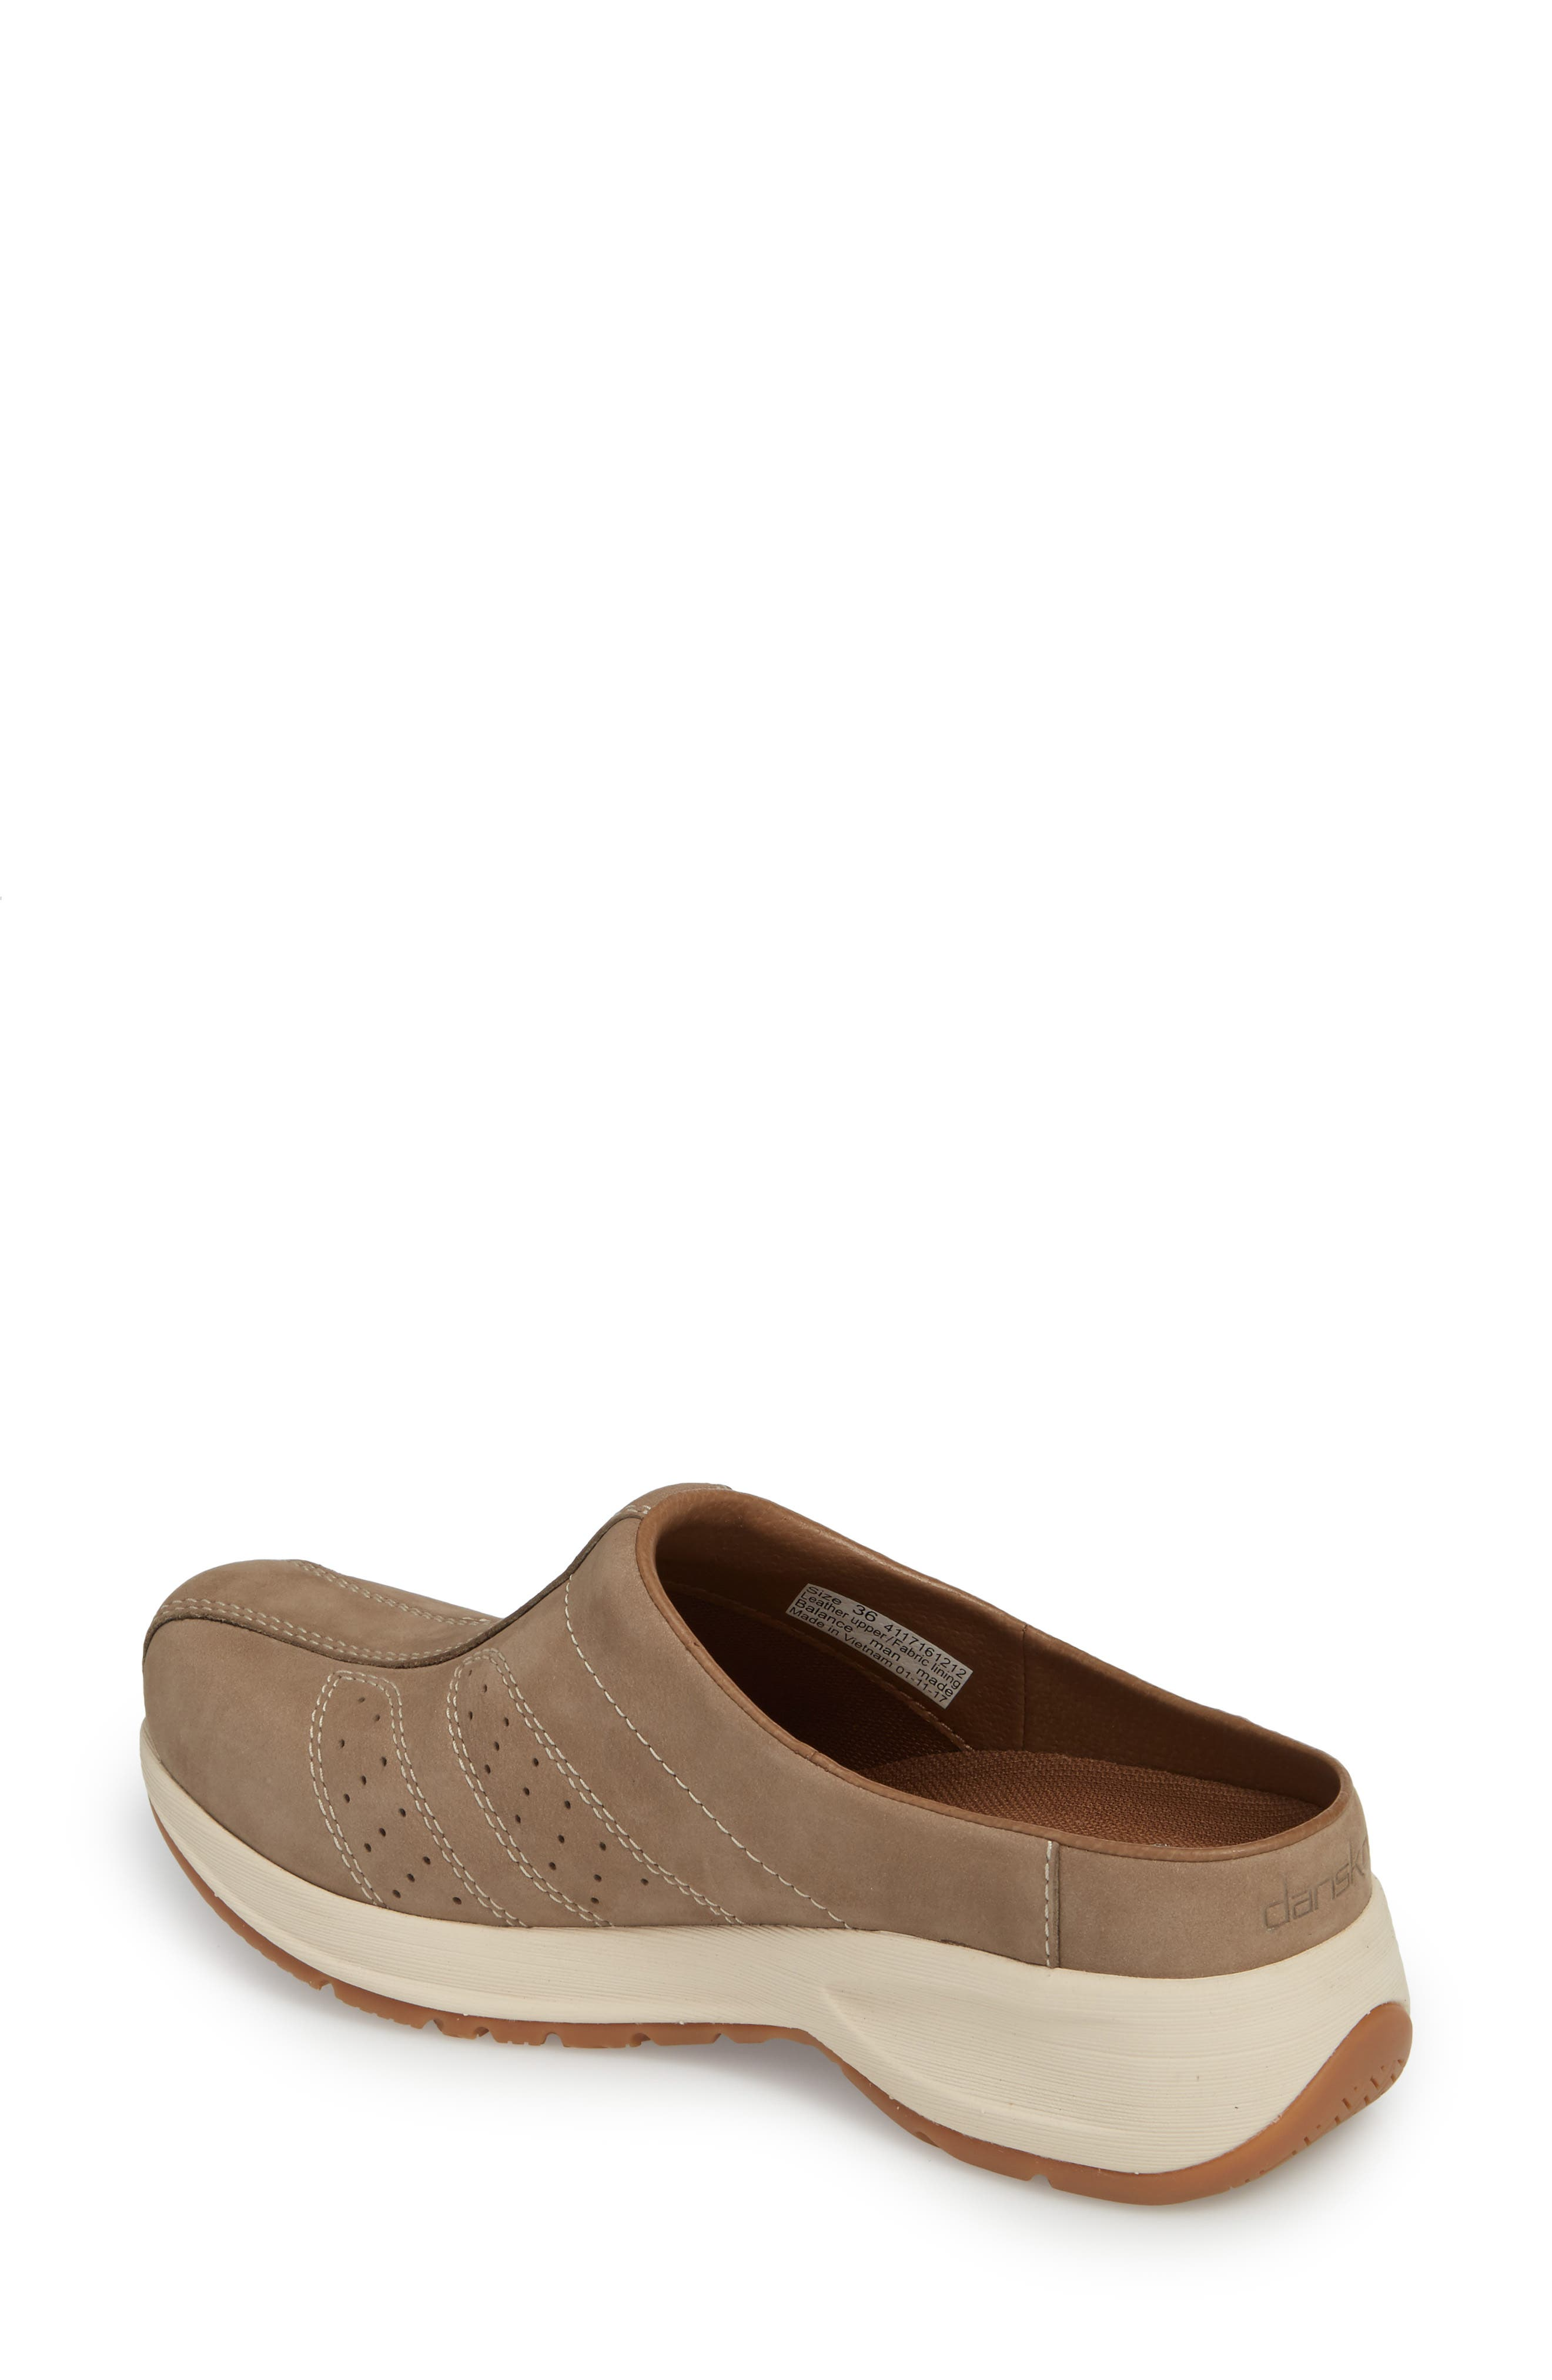 Dankso Shelly Mule,                             Alternate thumbnail 2, color,                             TAUPE MILLED NUBUCK LEATHER